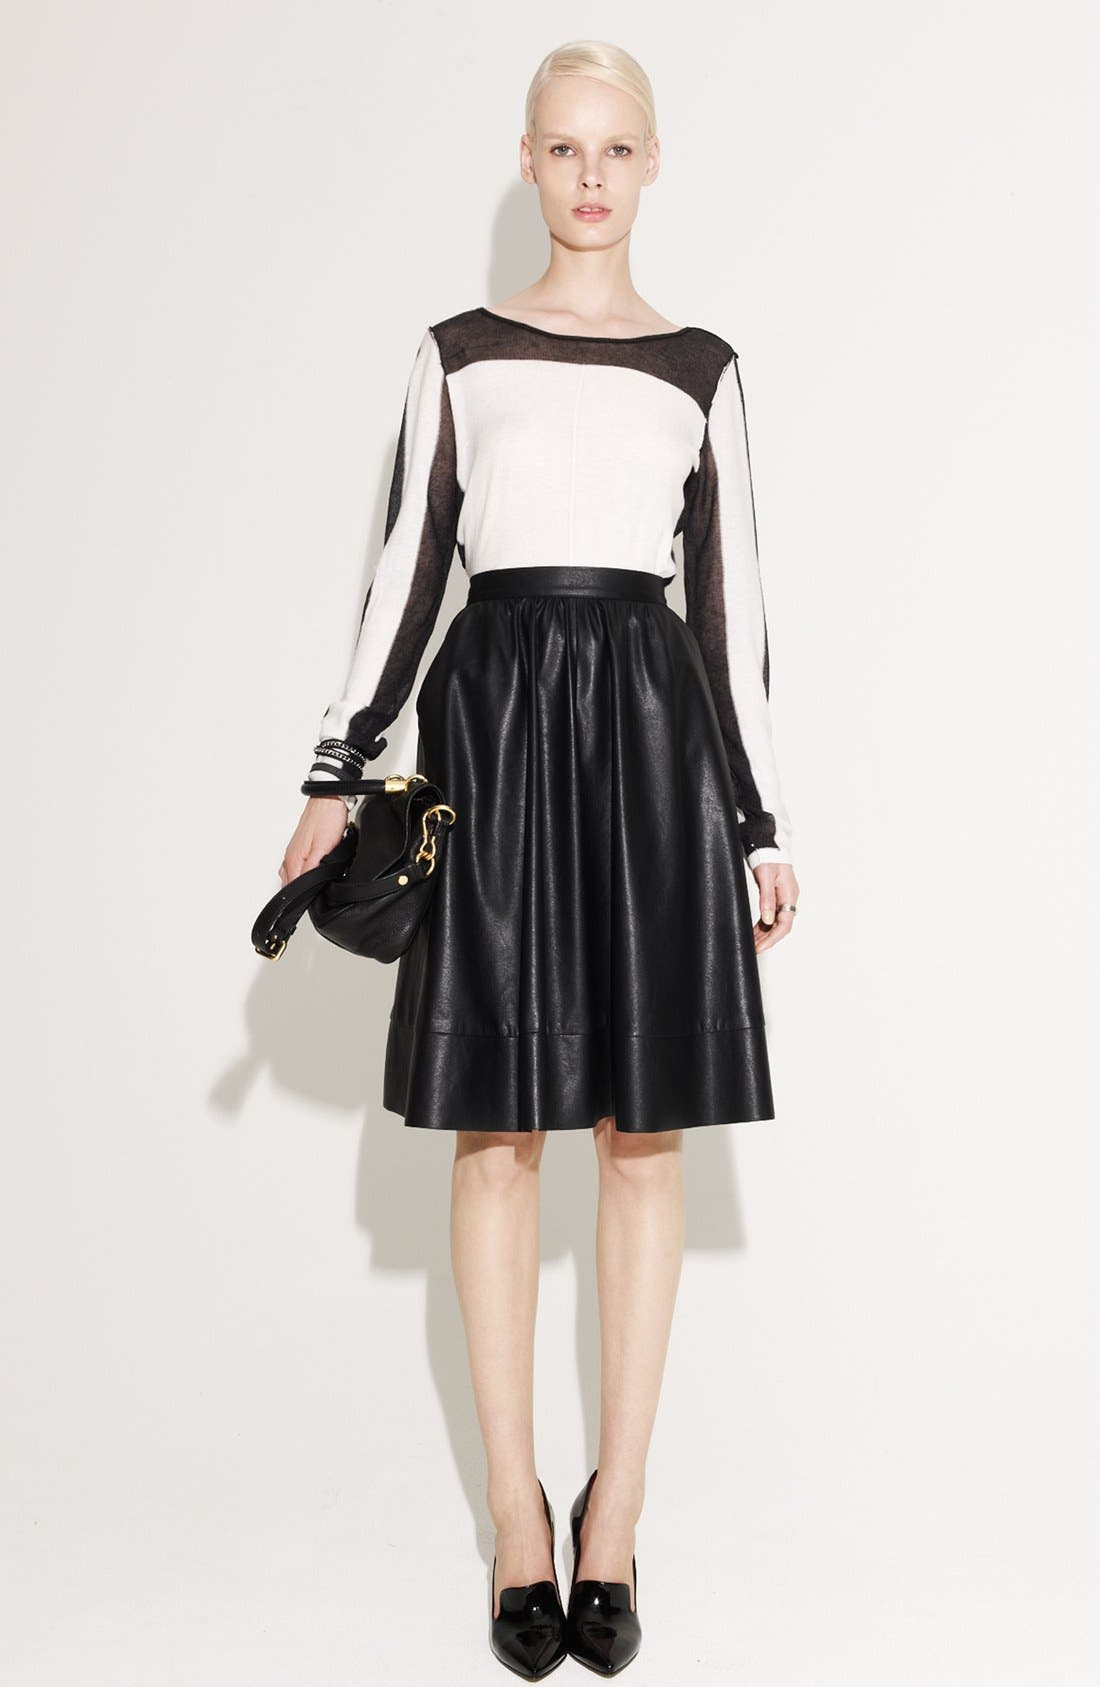 Alternate Image 1 Selected - Trouvé Sweater & Search for Sanity Skirt